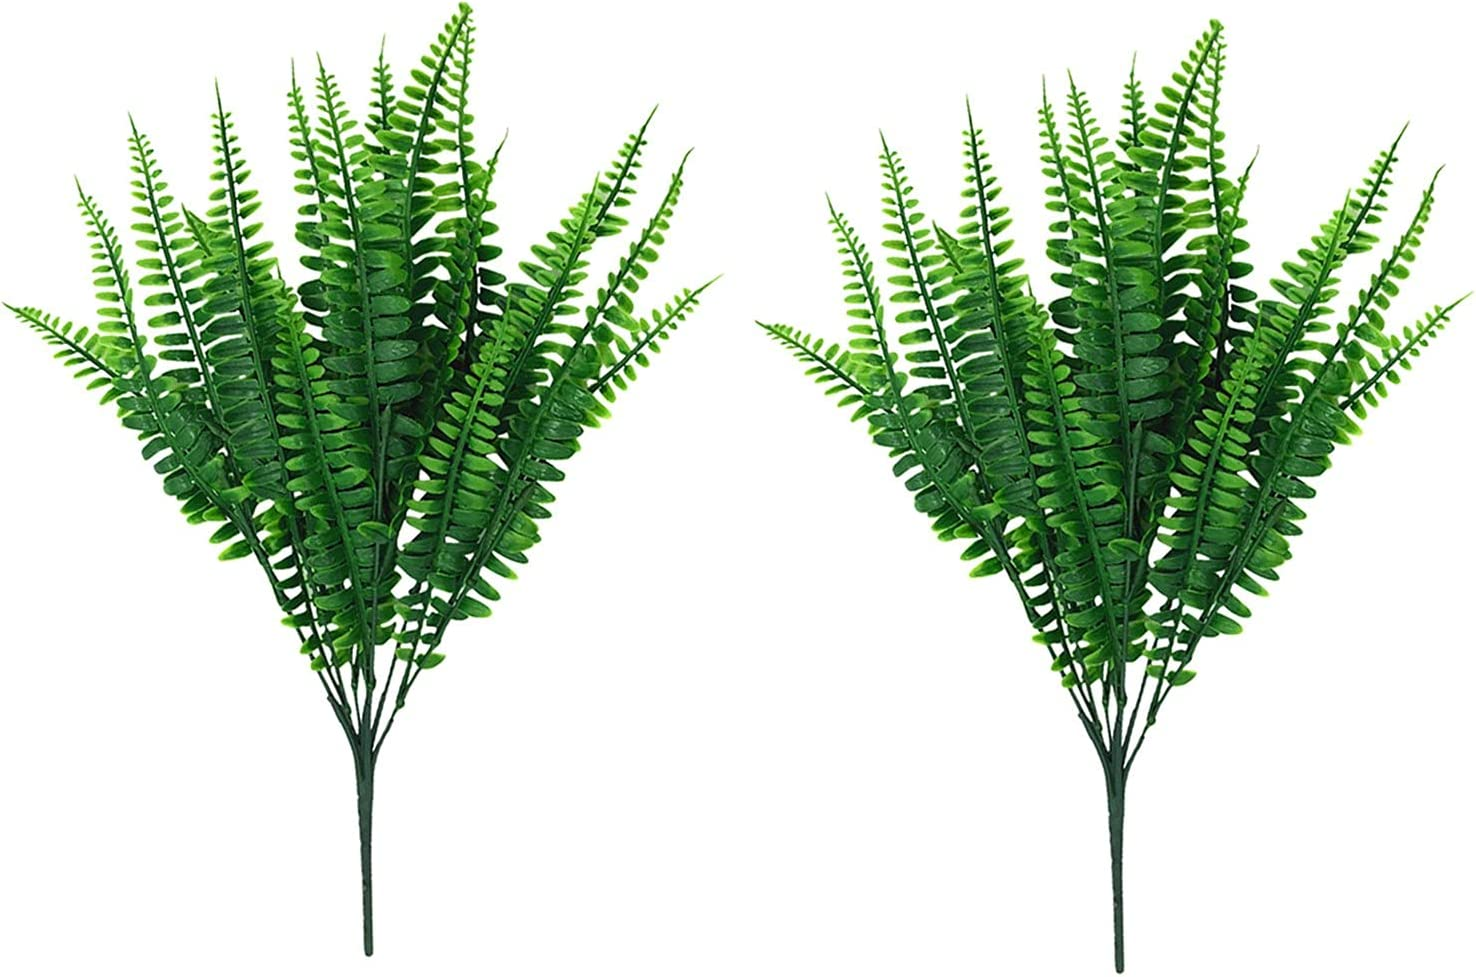 2 Bundles Artificial Greenery Plants Outdoor Fake Jacksonville Mall Plastic Large discharge sale Bouque